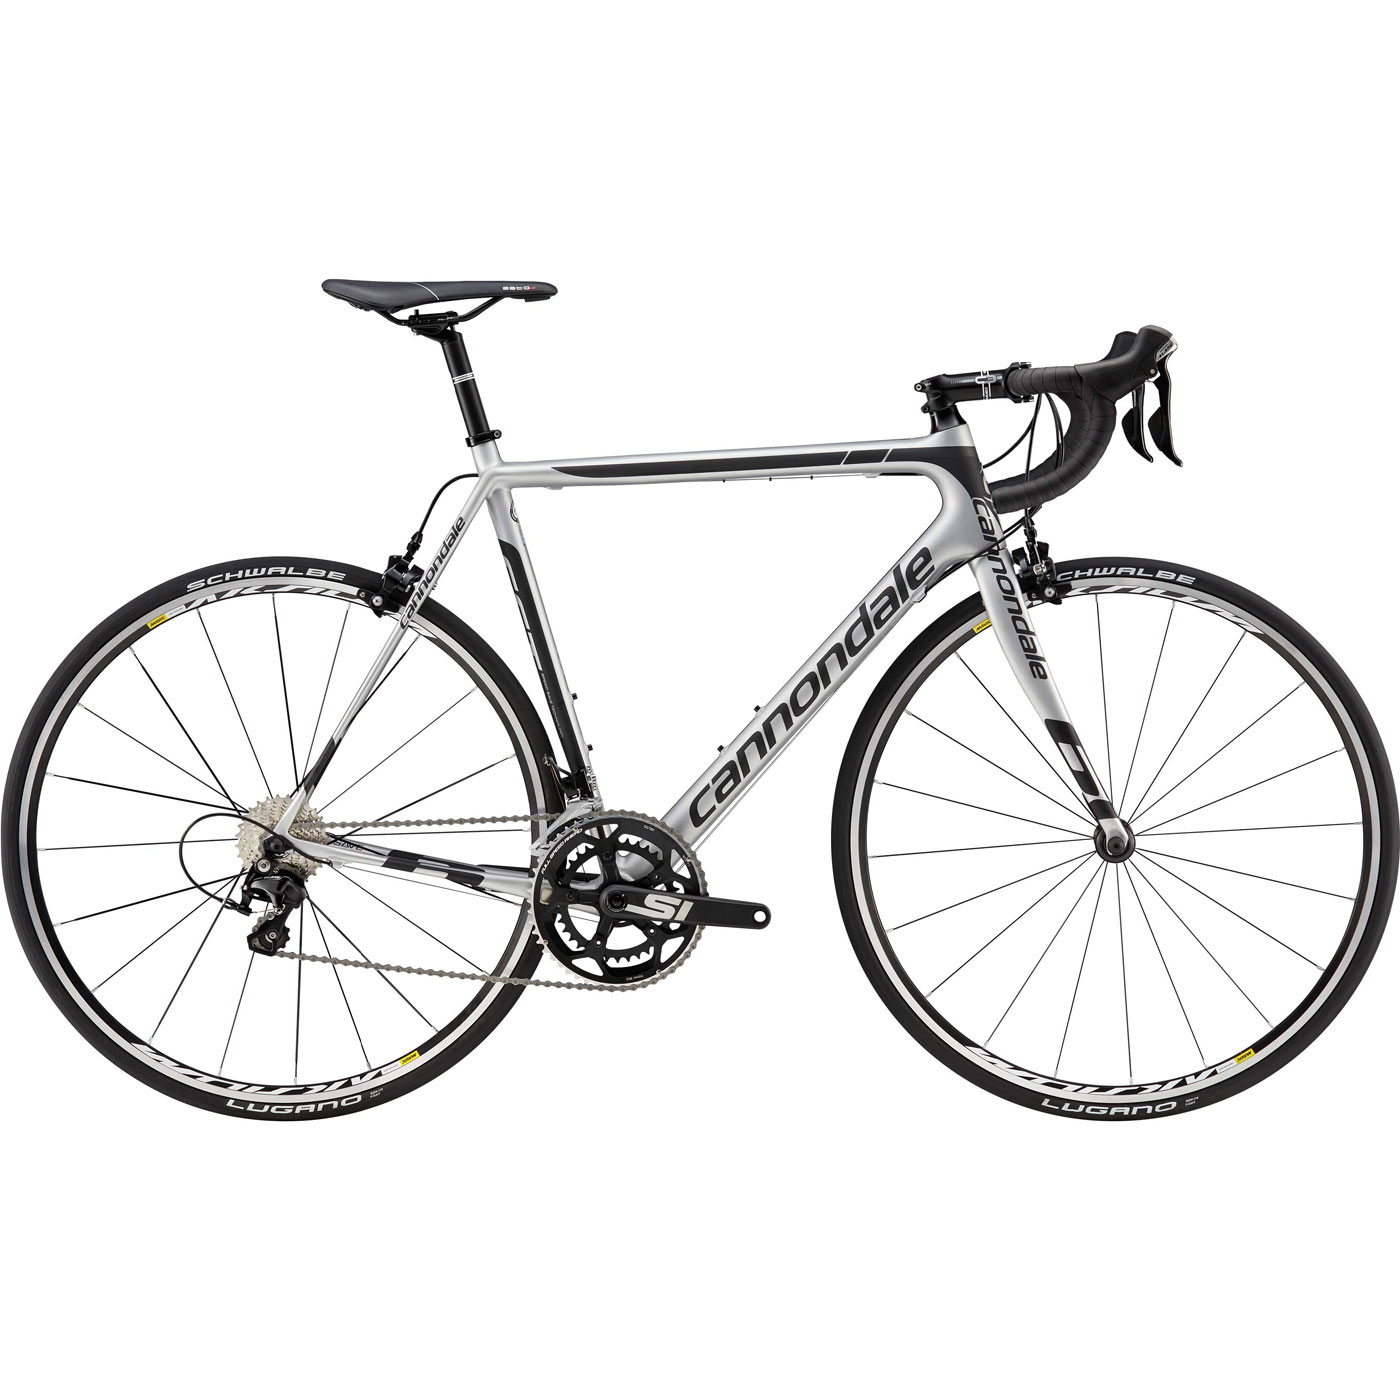 Cannondale SuperSix EVO 105 11 Carbon Road Bike